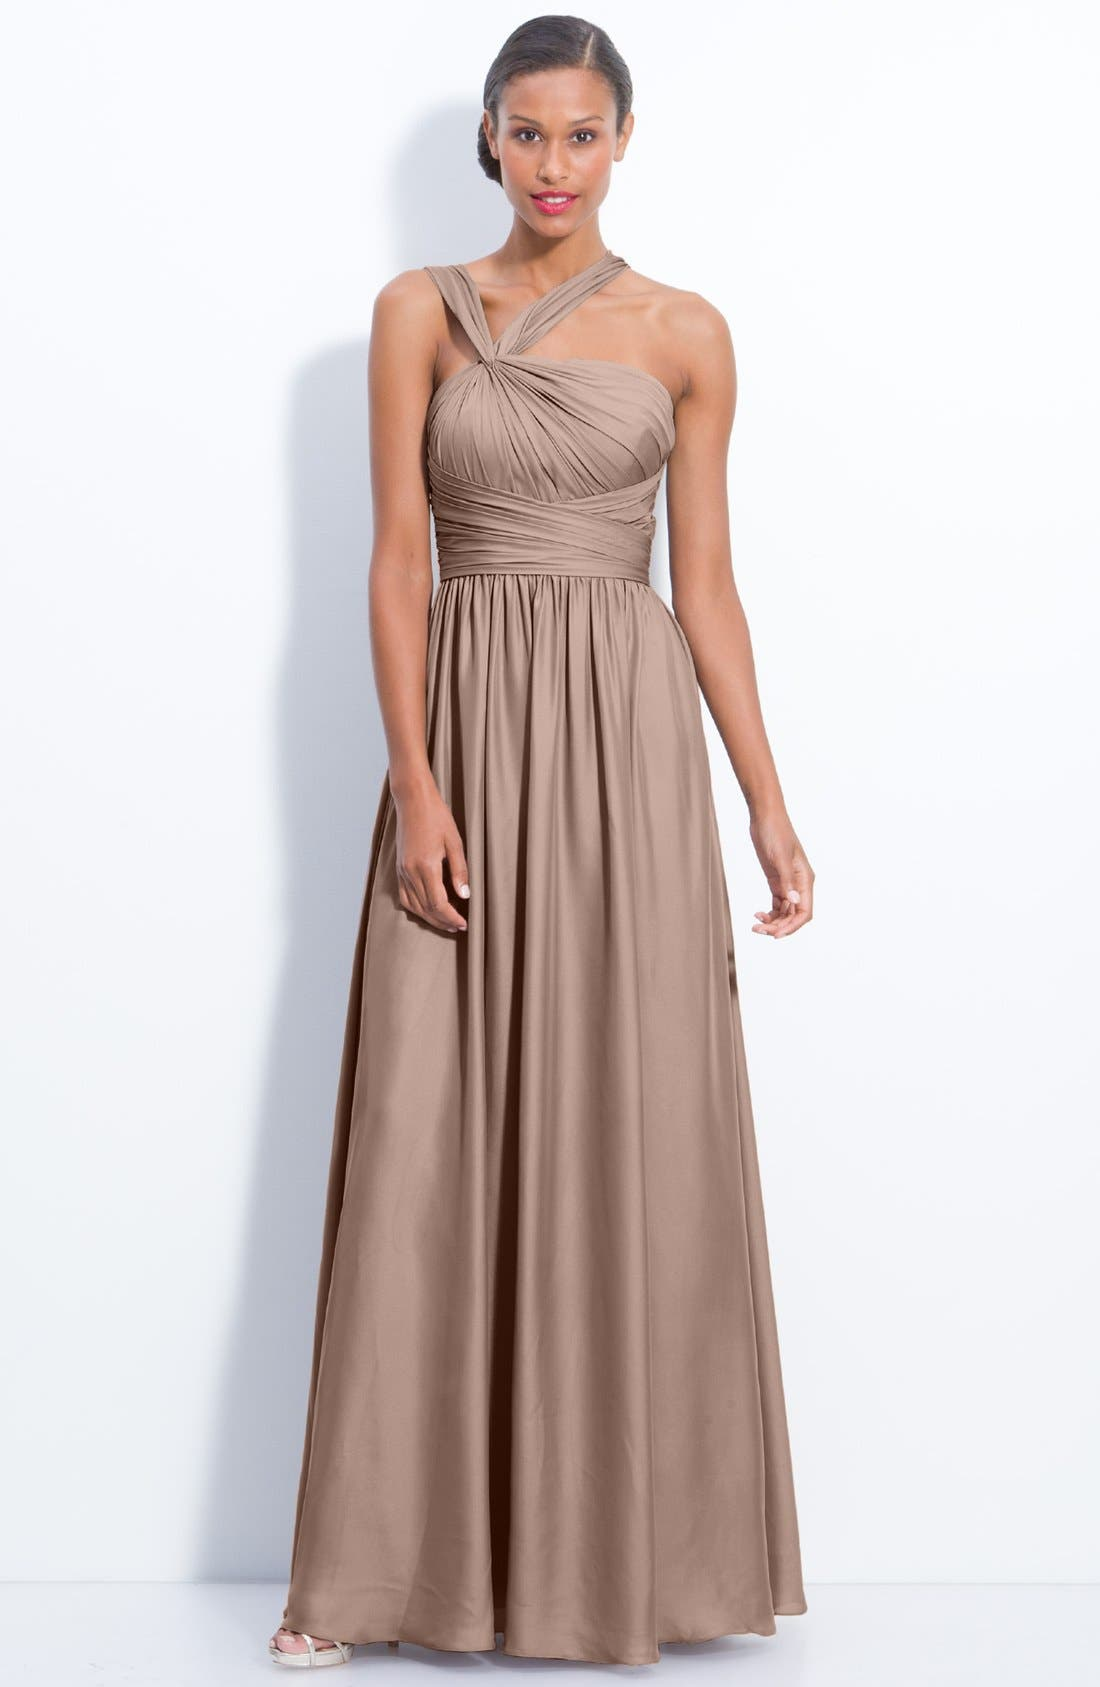 Main Image - Monique Lhuillier Bridesmaids Twist Shoulder Satin Chiffon Gown (Nordstrom Exclusive)